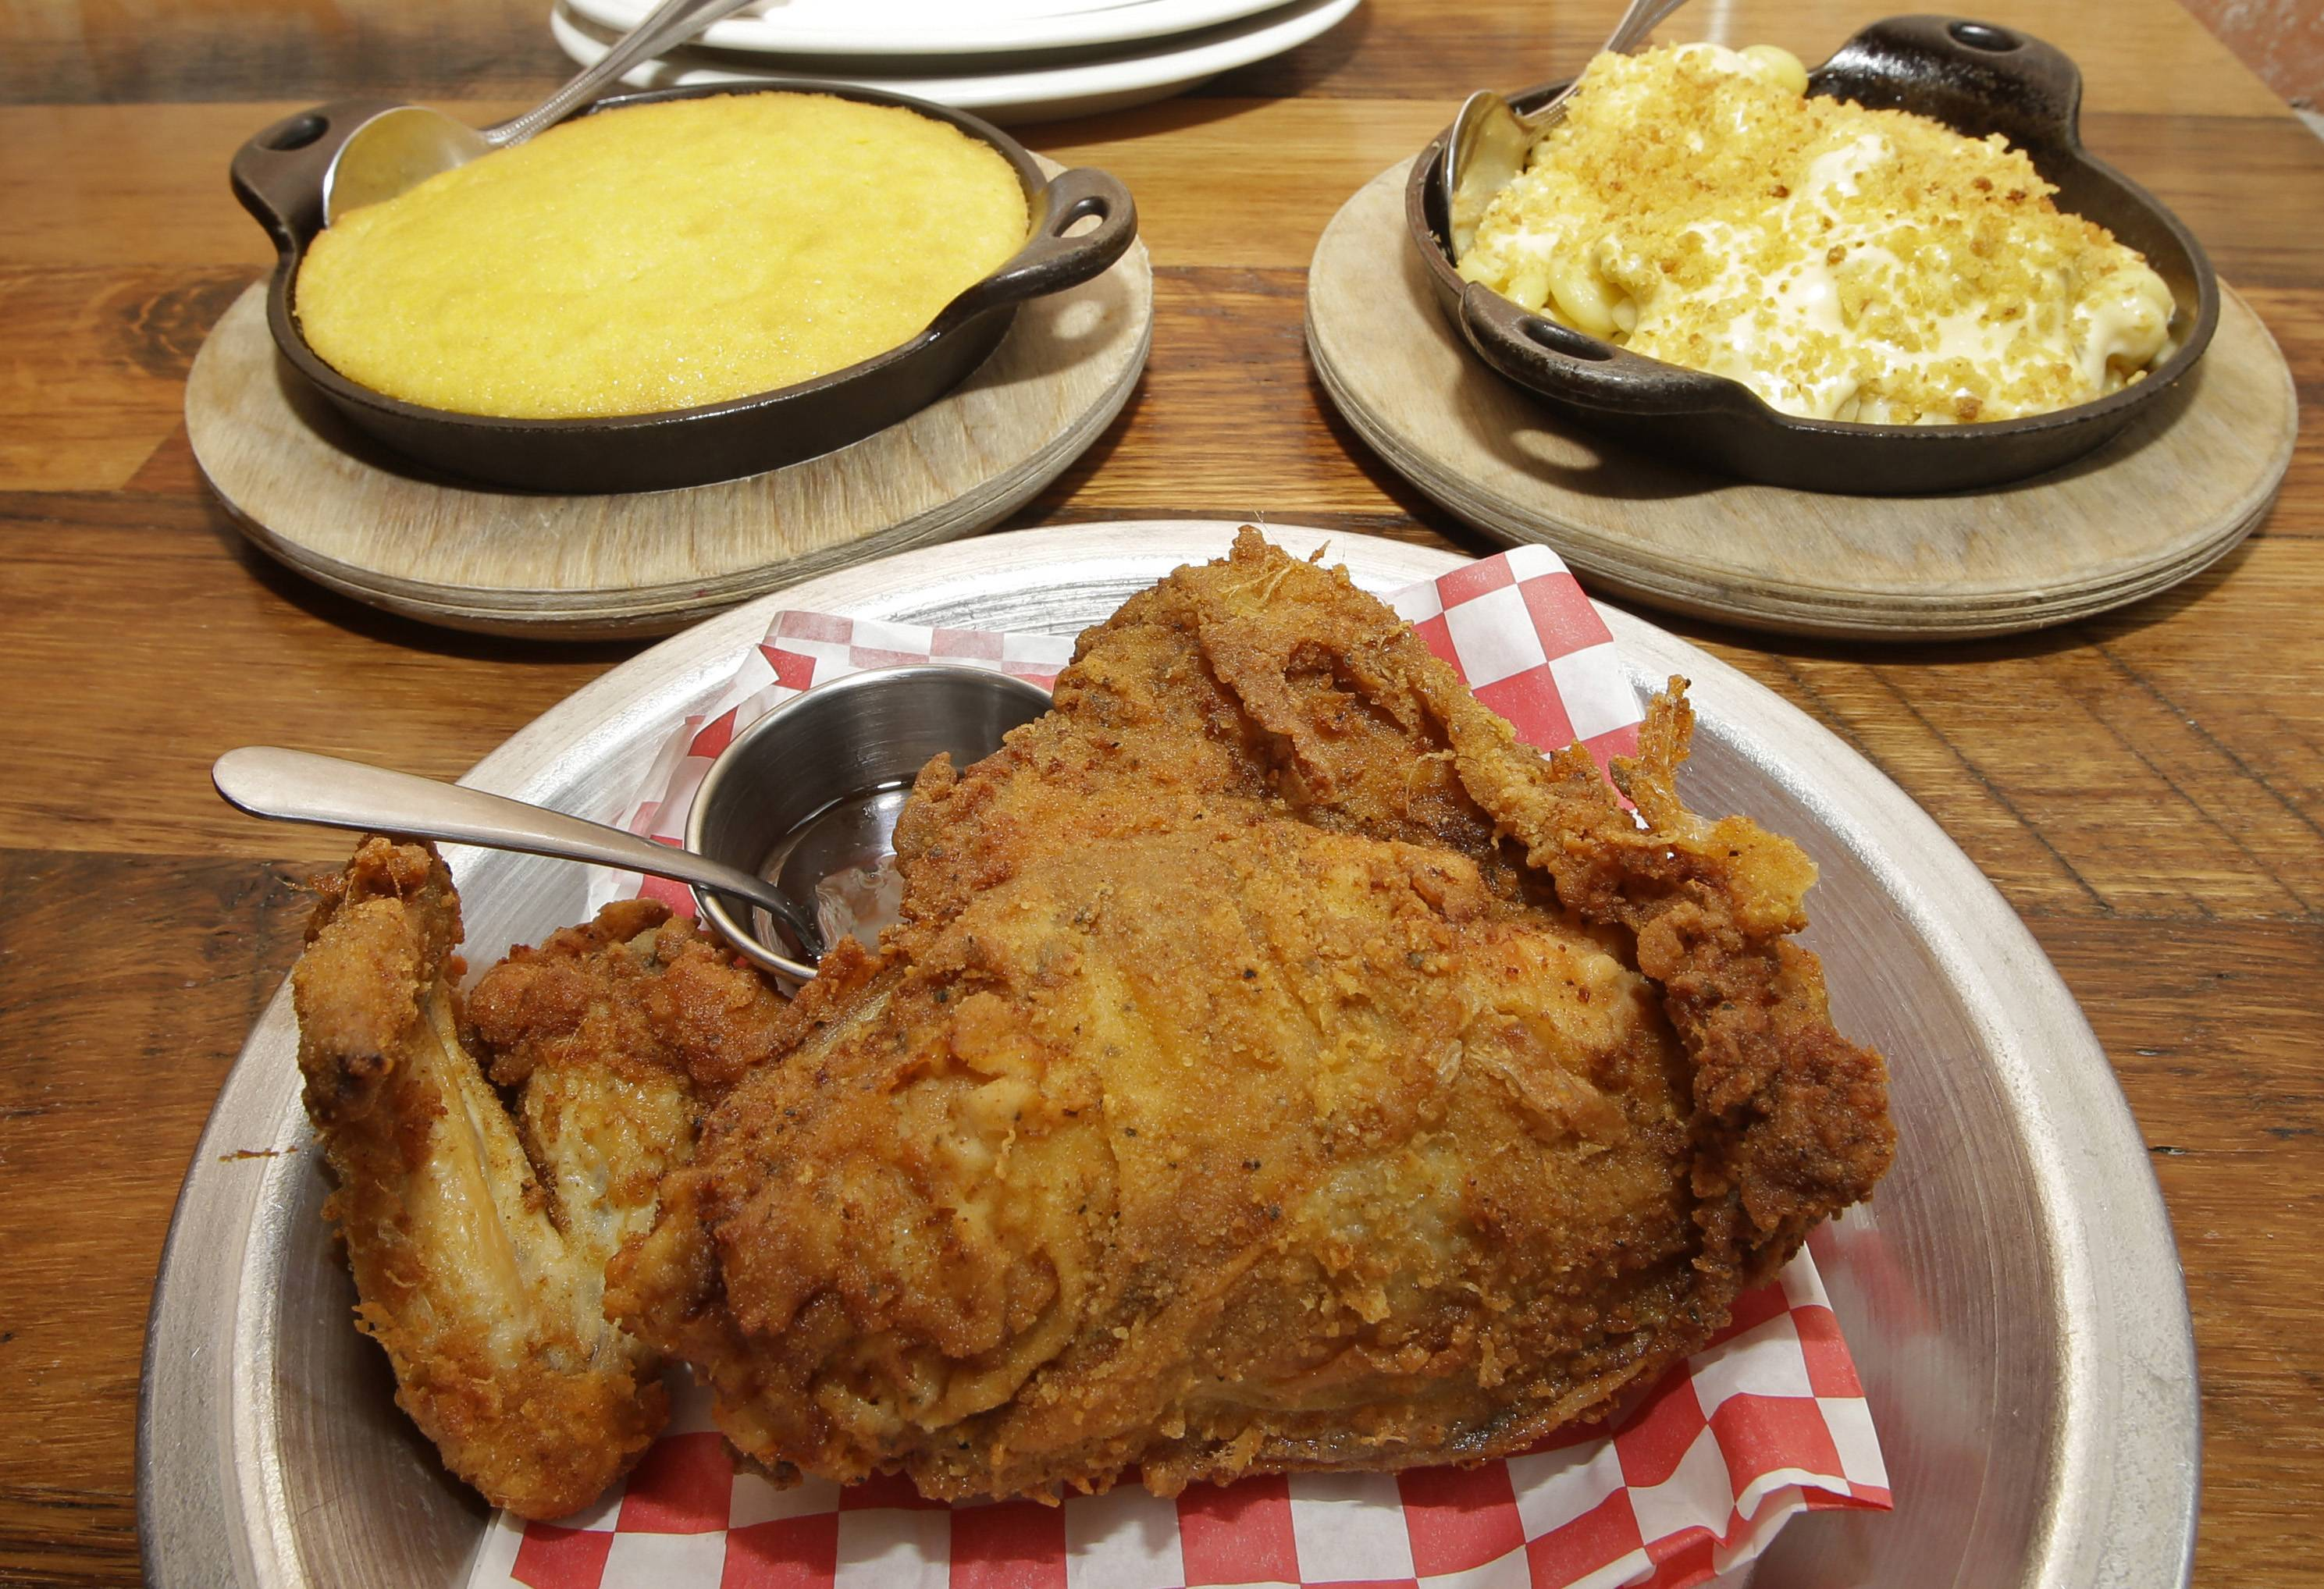 If you visit Cincinnati, it's worth it to make the trip to the Over-the-Rhine neighborhood for the fried chicken and side dishes like spoonbread and mac and cheese at The Eagle.